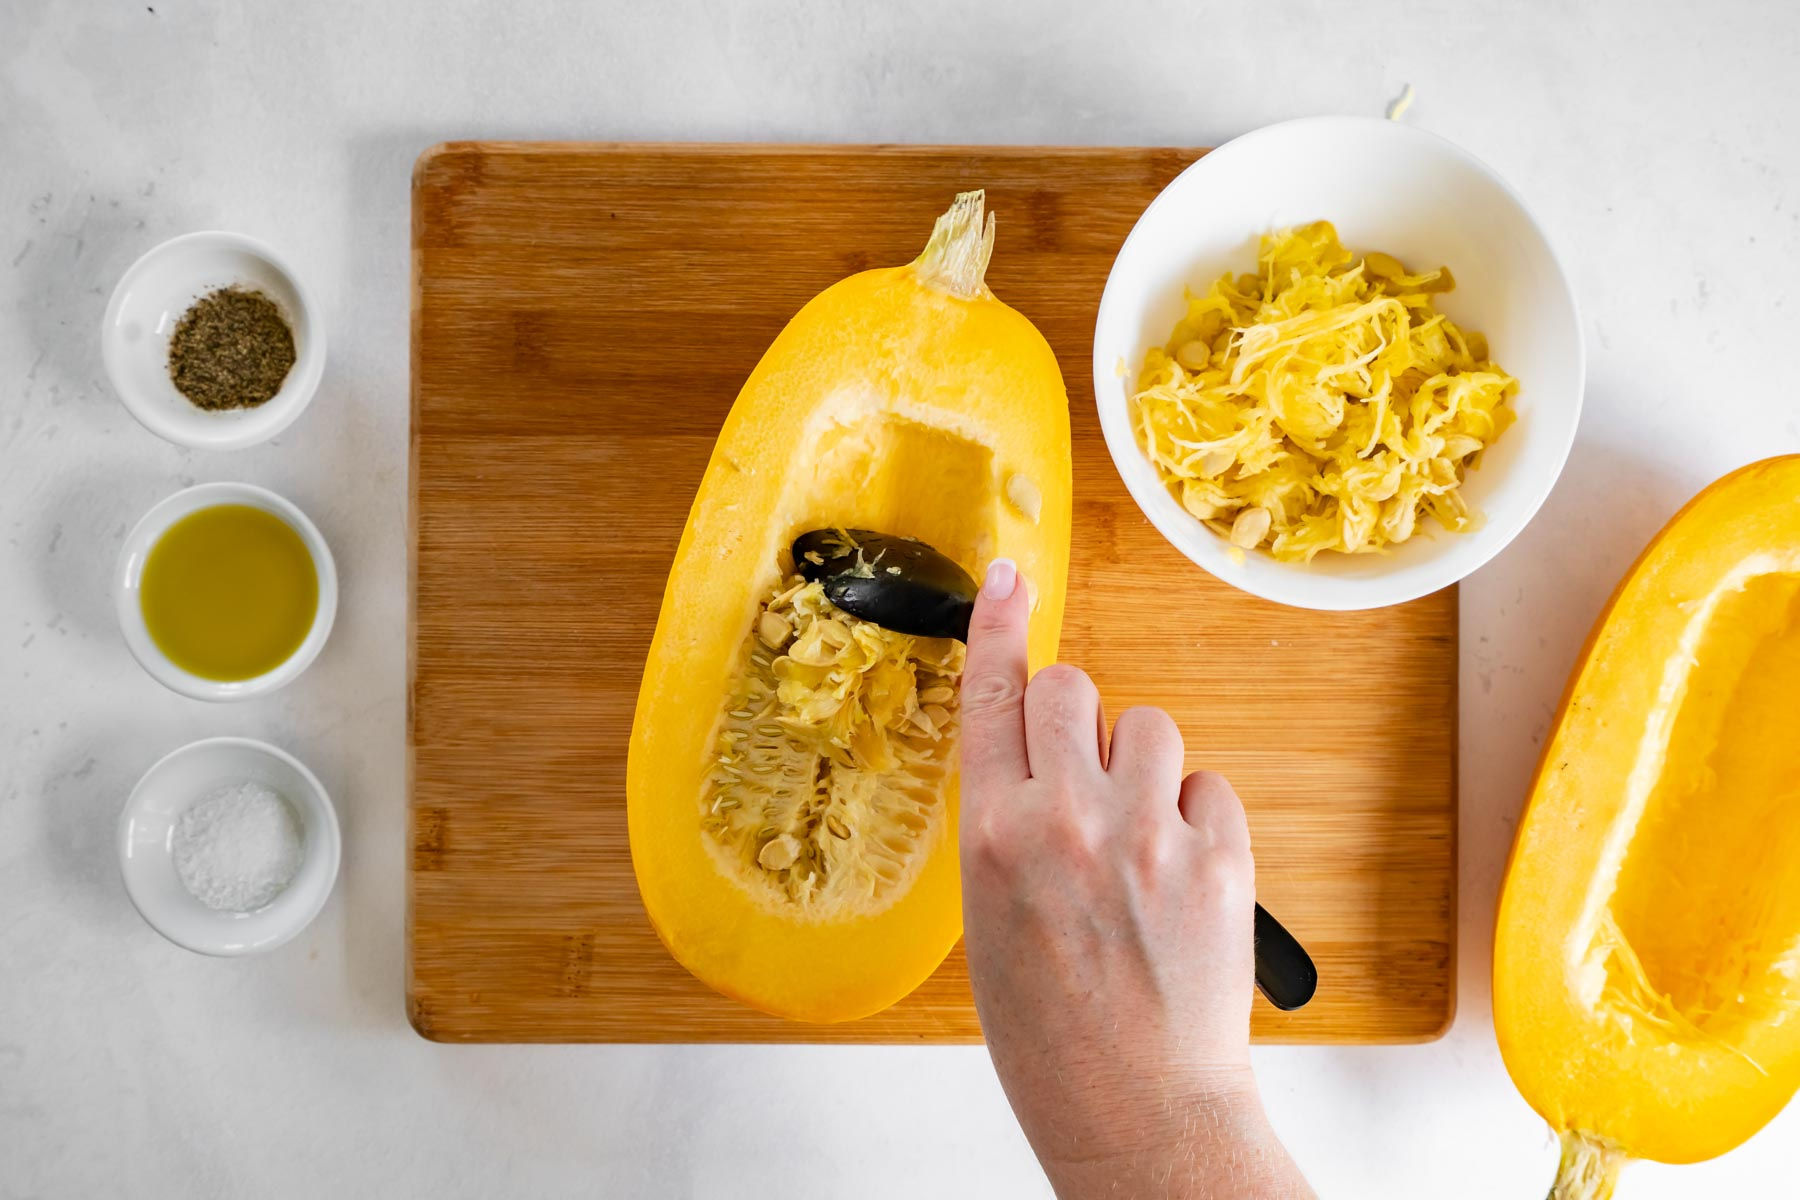 scooping seeds out of spaghetti squash